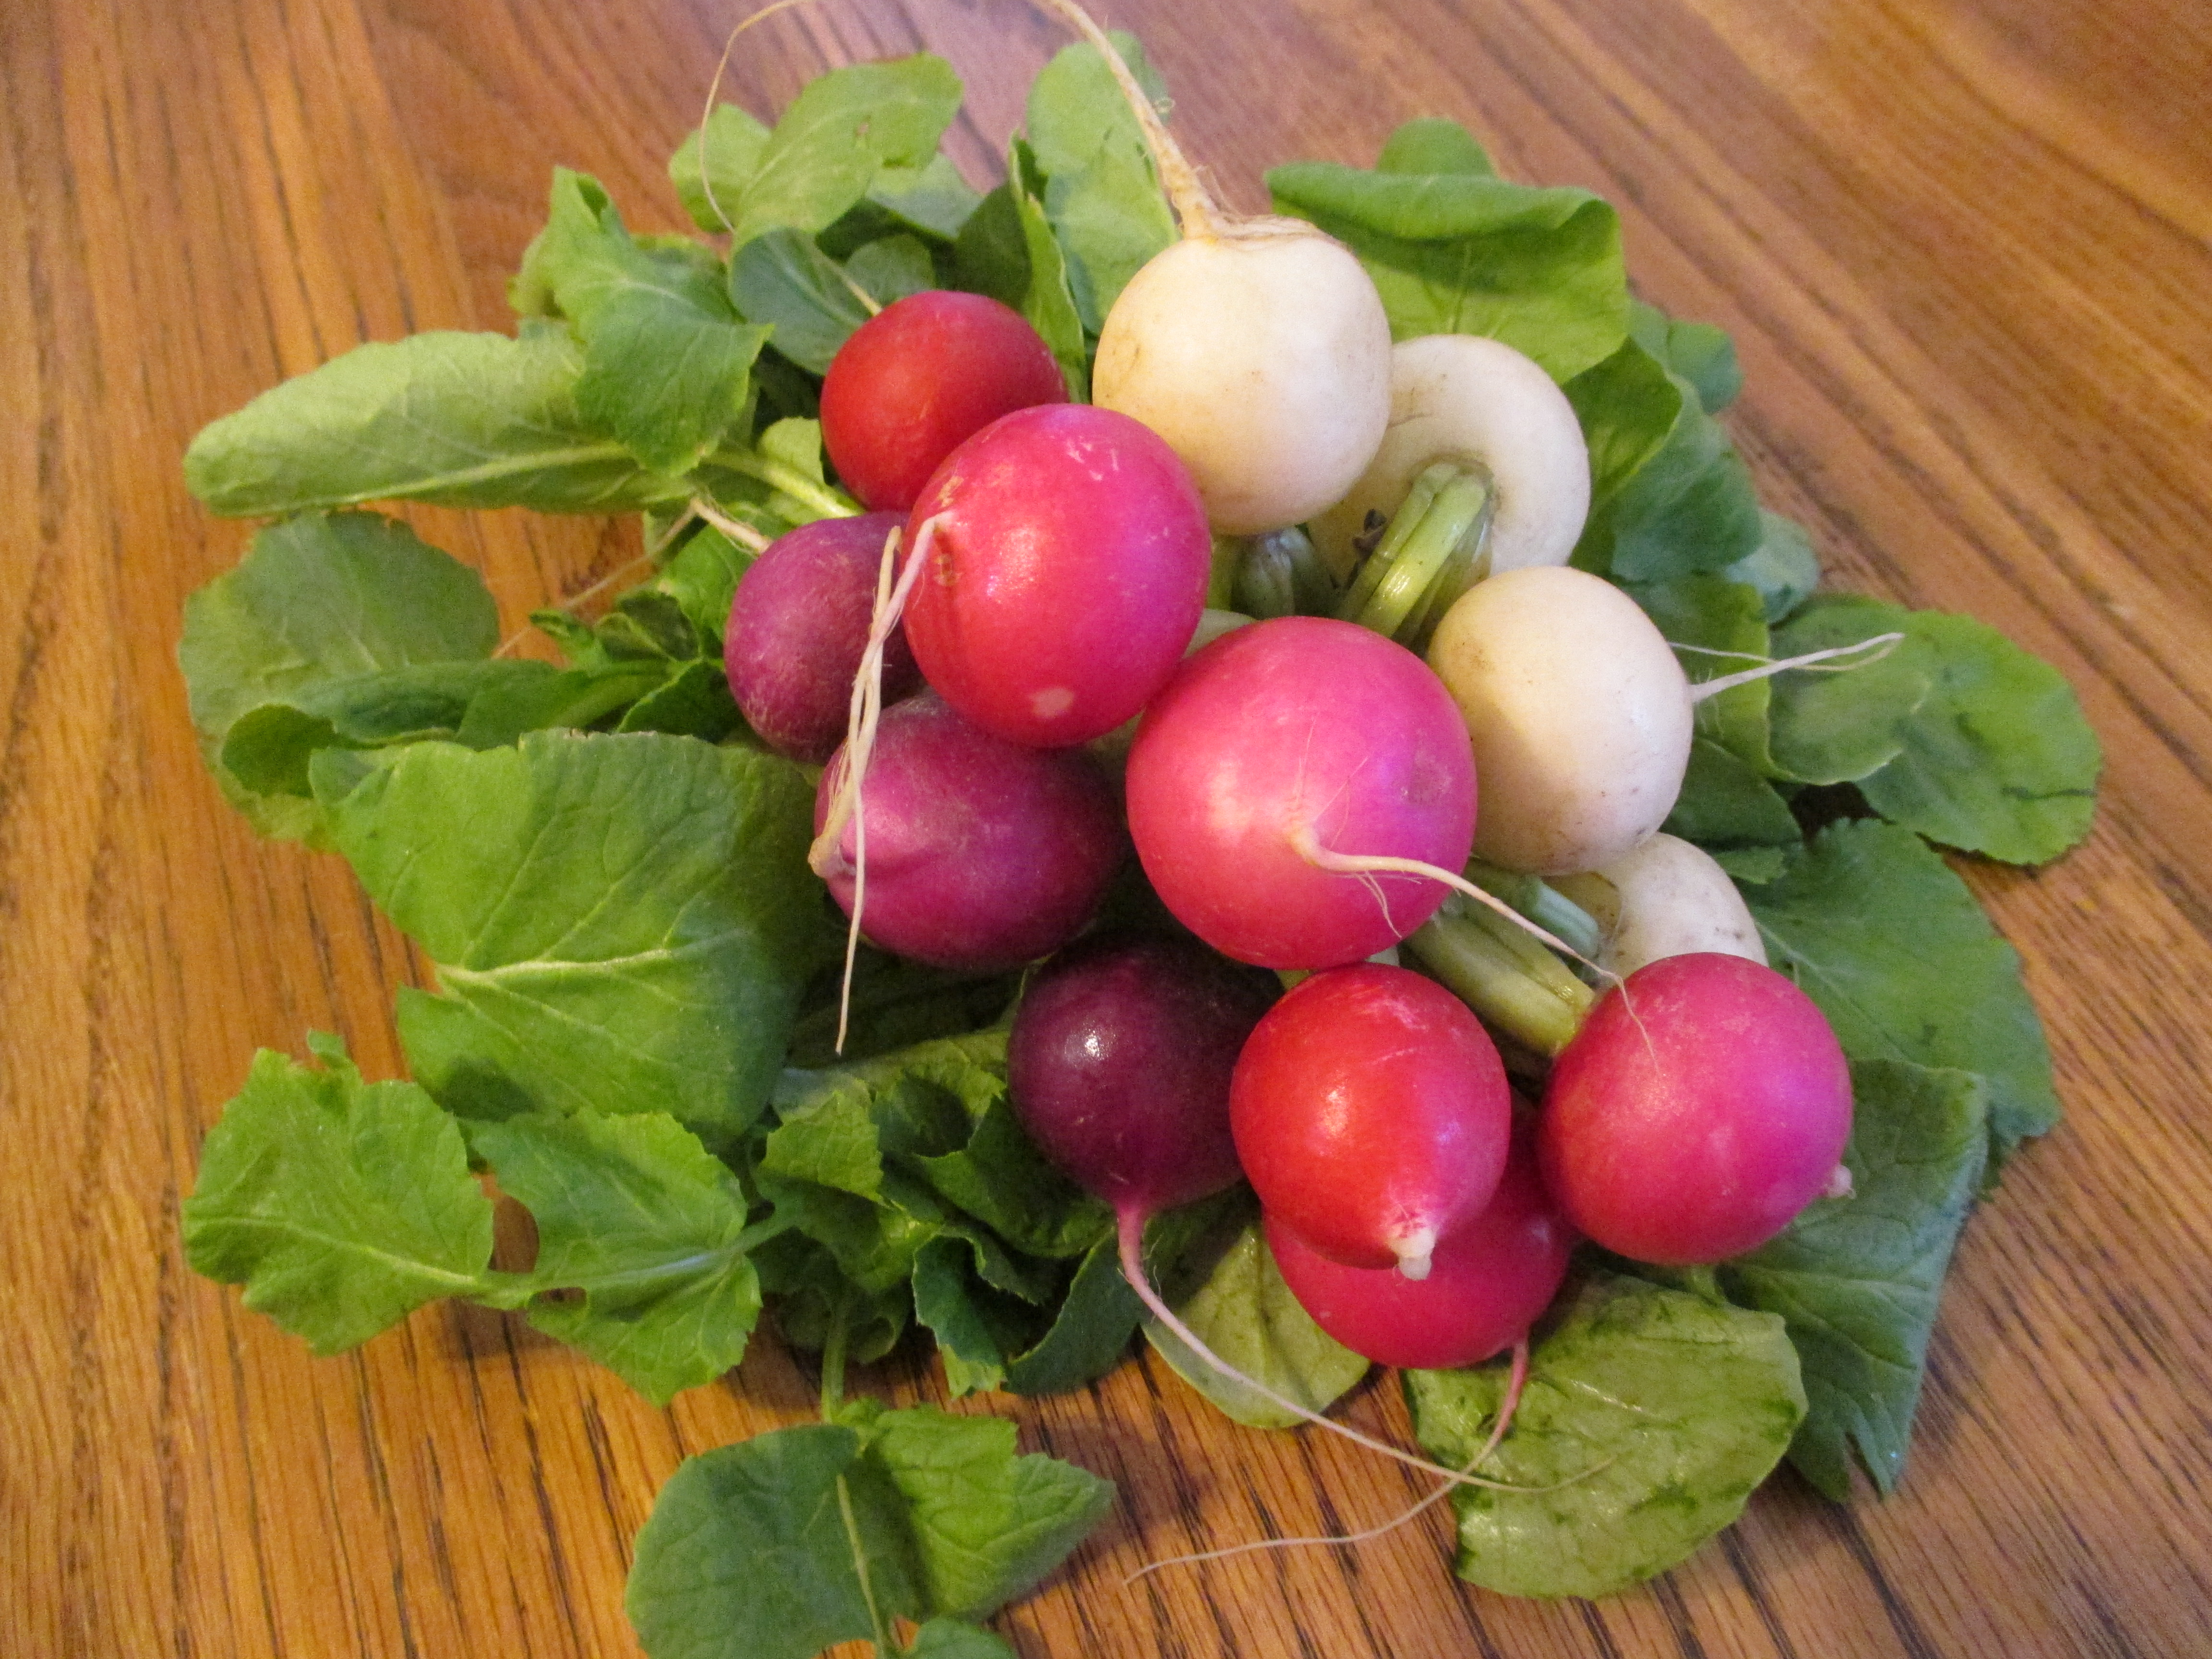 Planting turnips and radishes in 2018 54